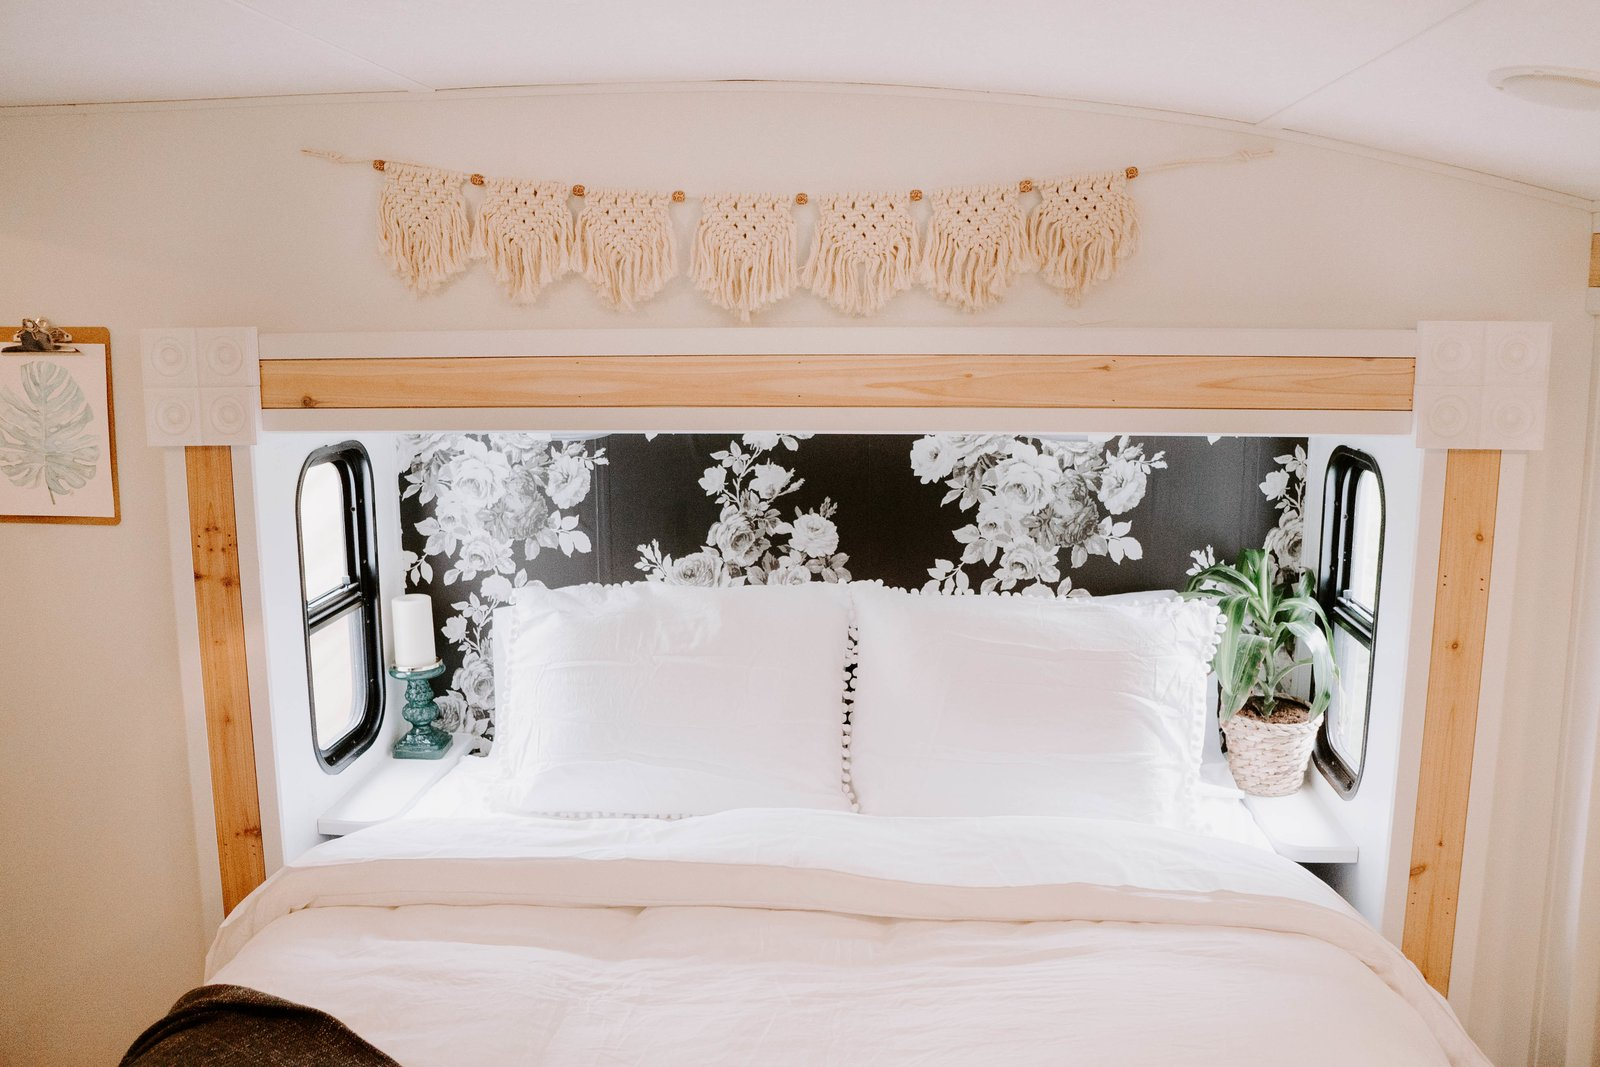 Bedroom, Bed, and Light Hardwood Floor Snuggle up quick on this bed and you are sure to fall asleep dreaming of your adventures tomorrow!  The Cougar